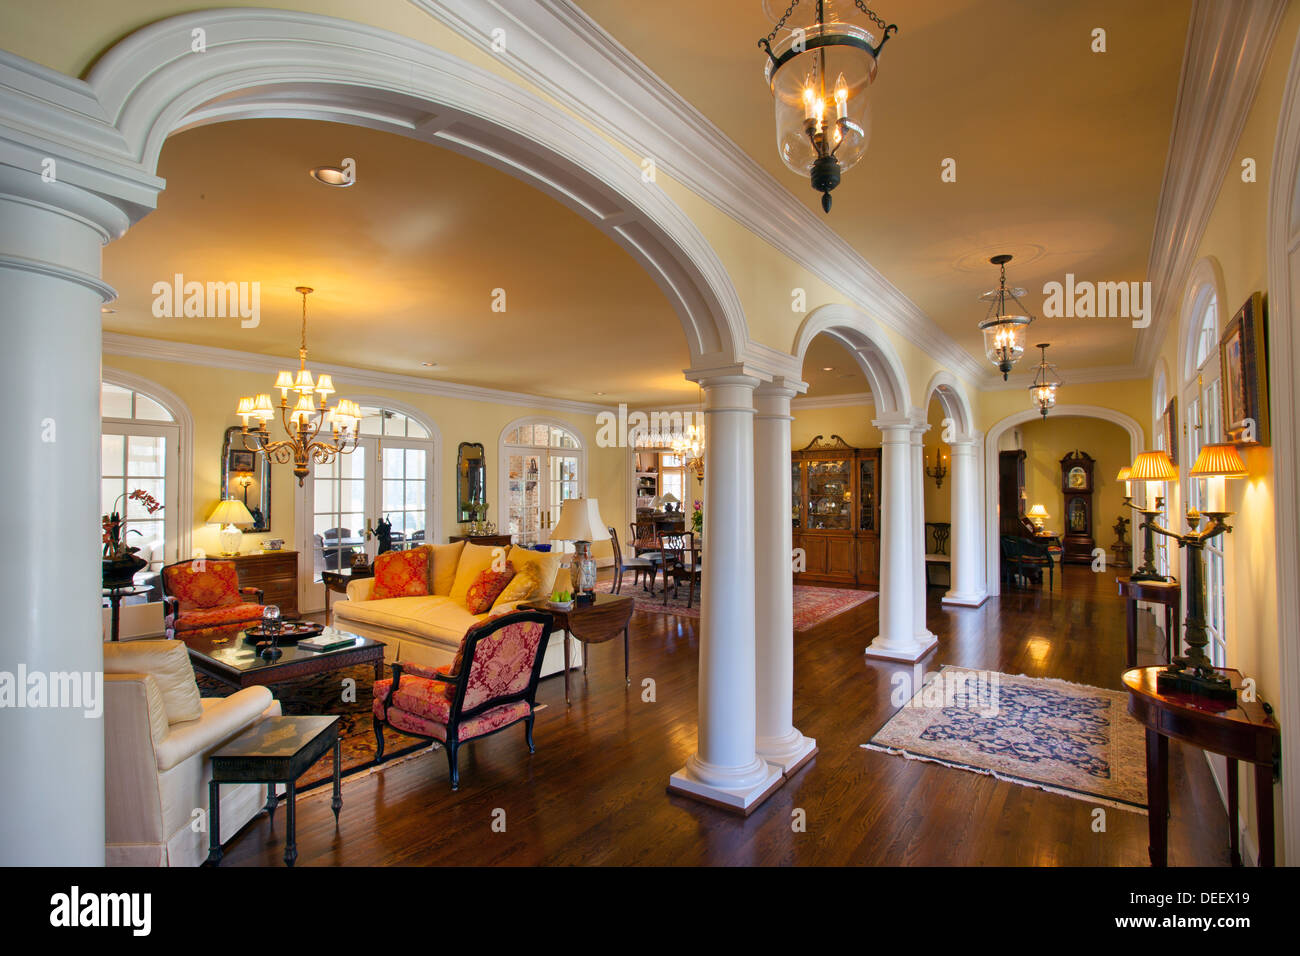 Luxury Home Interior In Nashville Tennessee Usa Stock